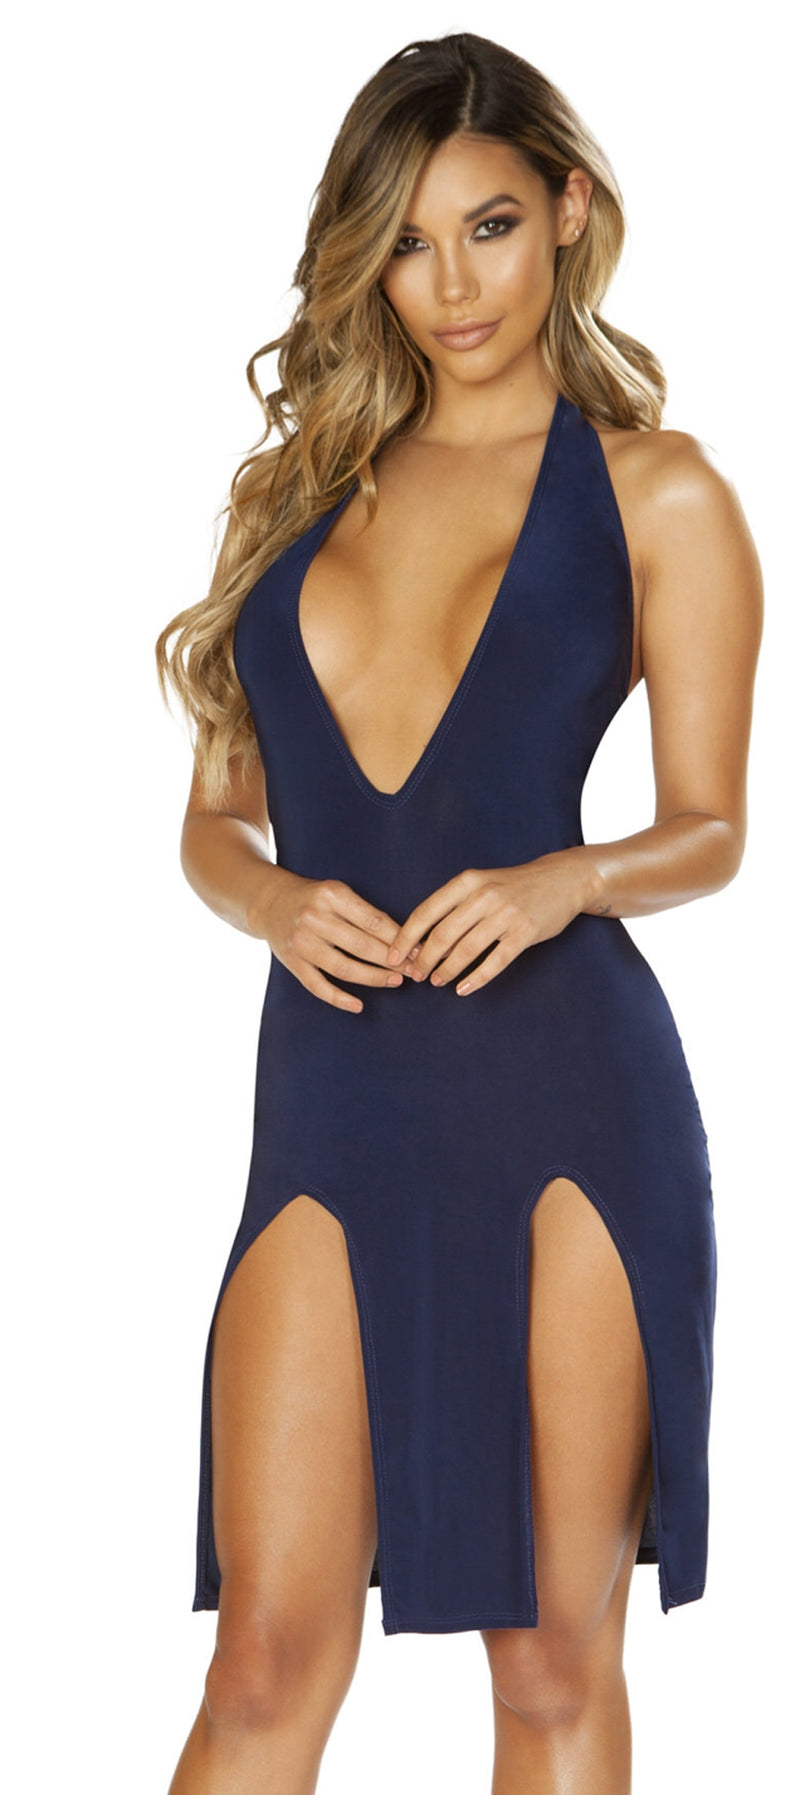 RM-3661 Navy blue low neck dress main